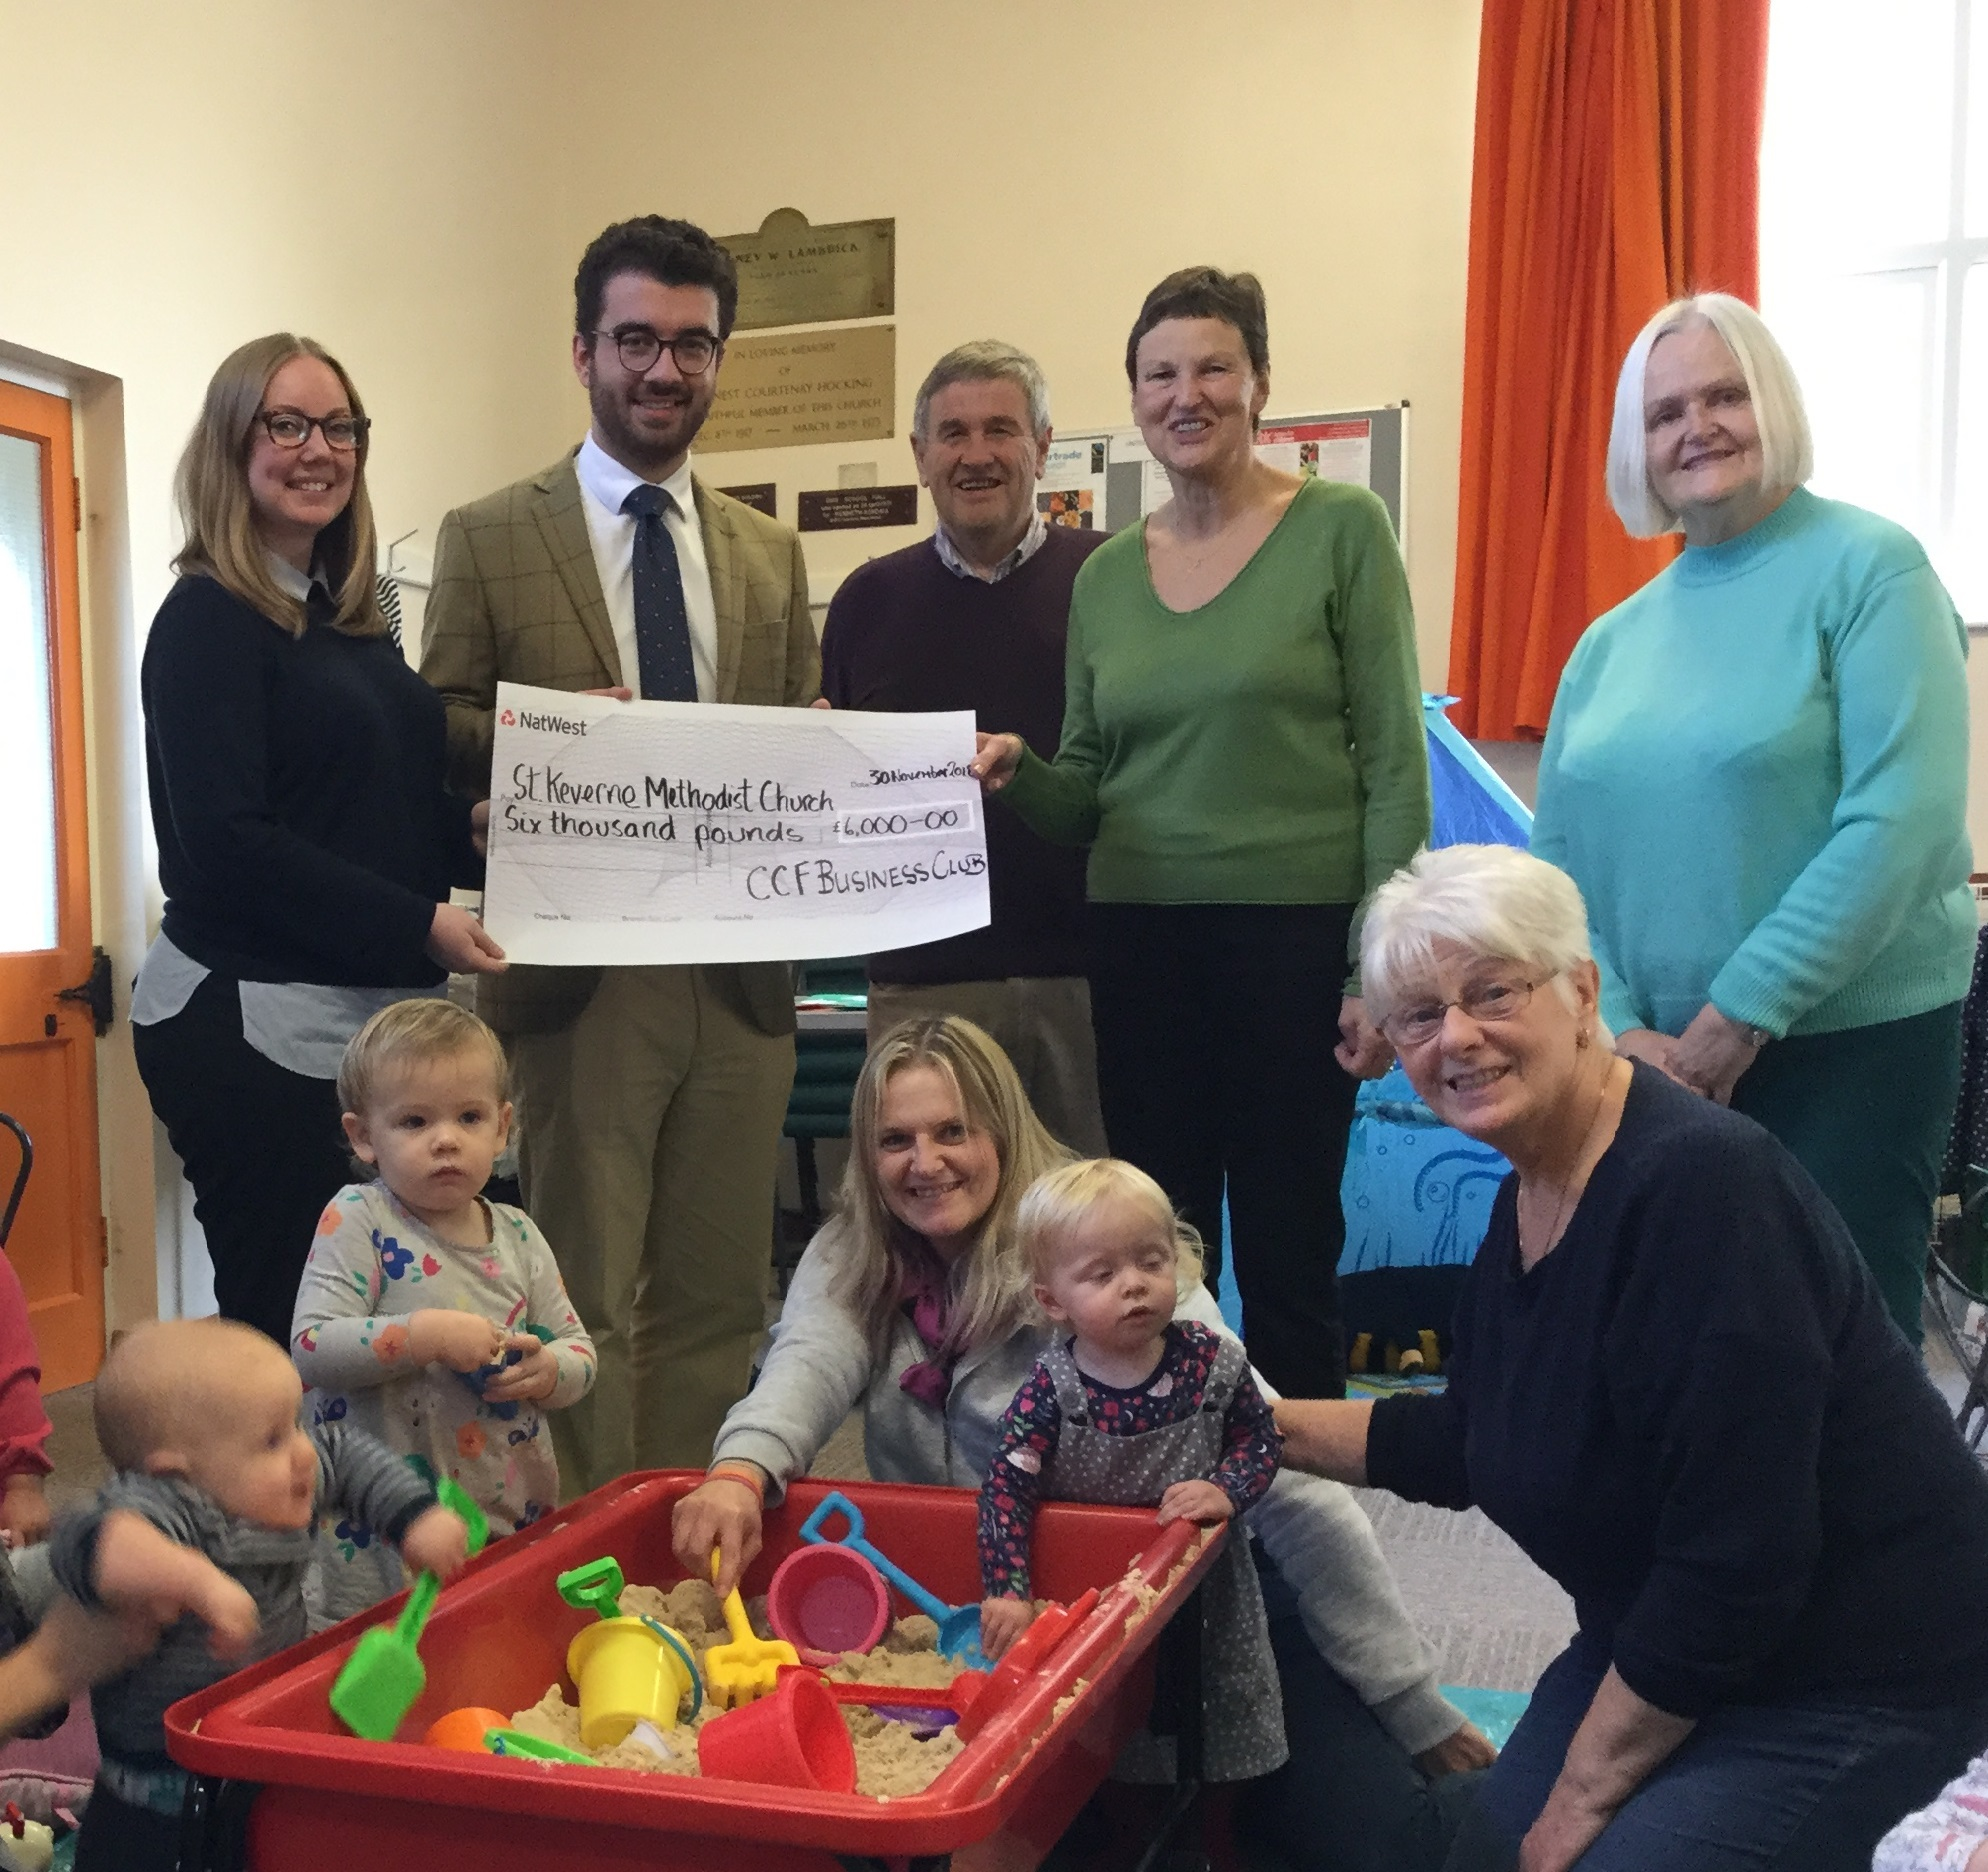 CCF Business Club members present Cheque to St Keverne Methodist Church and Little Blessings parent & toddler group. Left to right (standing): James Sculthorp-Wright and Jayne Robinson (both Atkins Ferrie Wealth Management) with Tony Ings (St Keverne